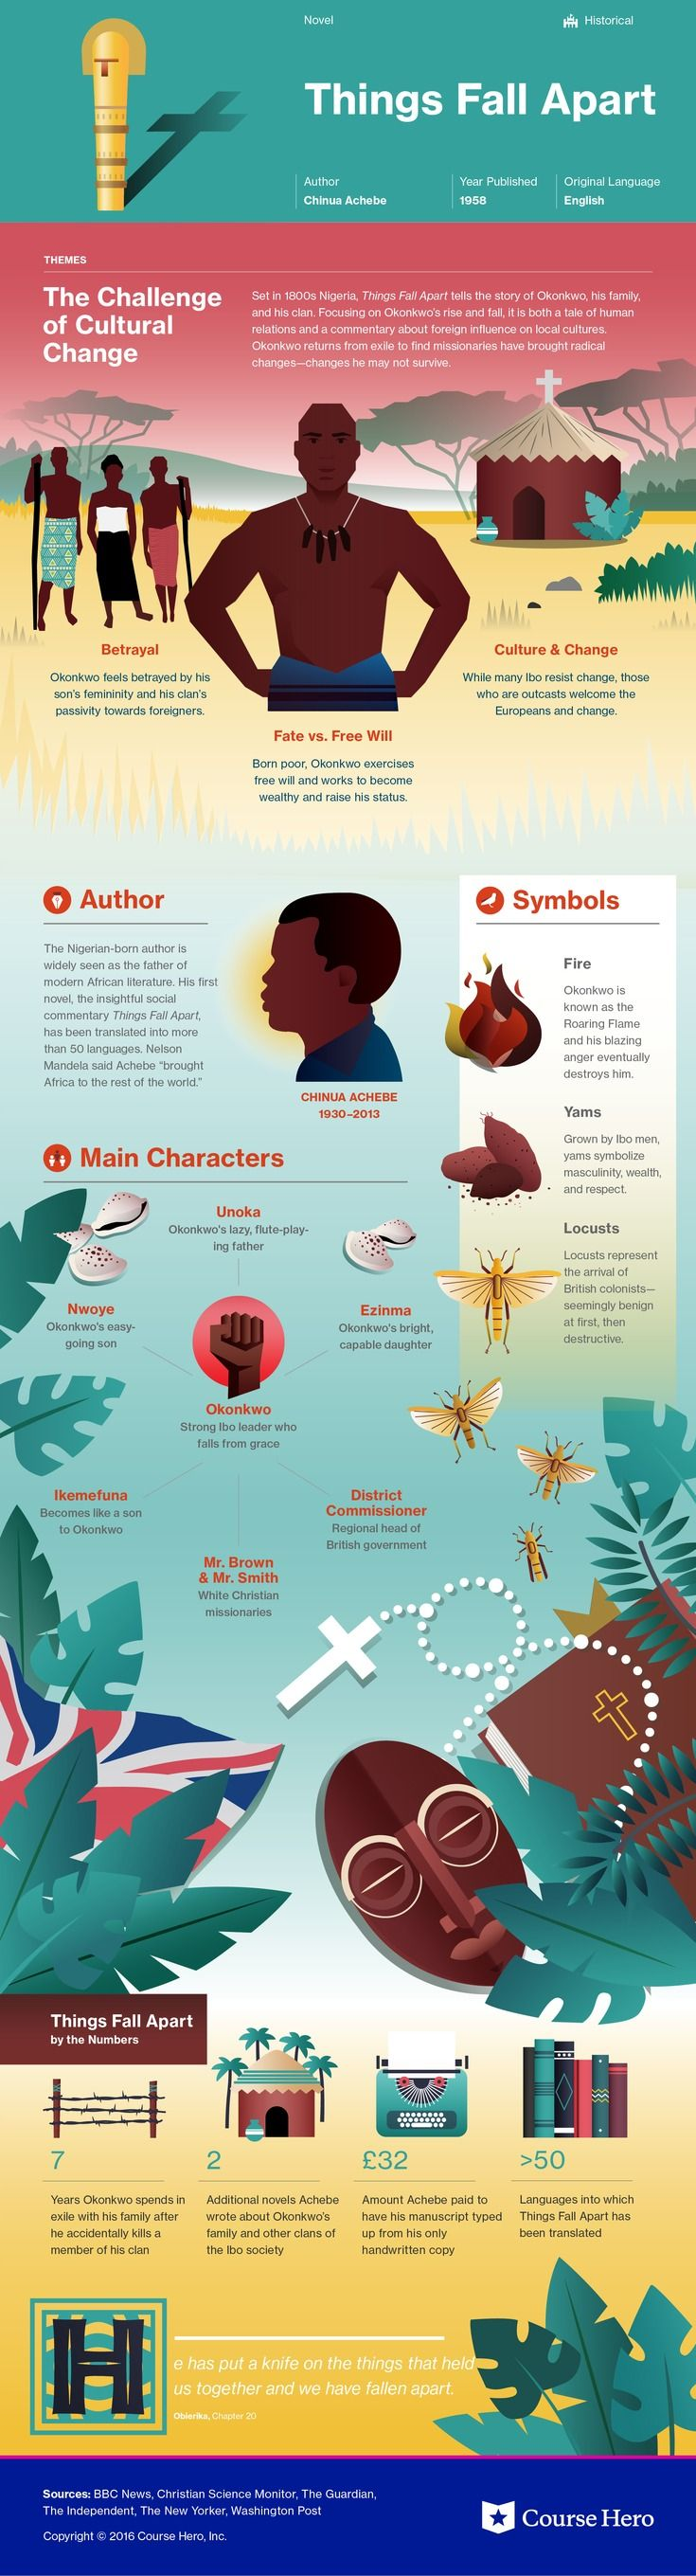 17 best ideas about things fall apart chinua achebe this coursehero infographic on things fall apart is both visually stunning and informative